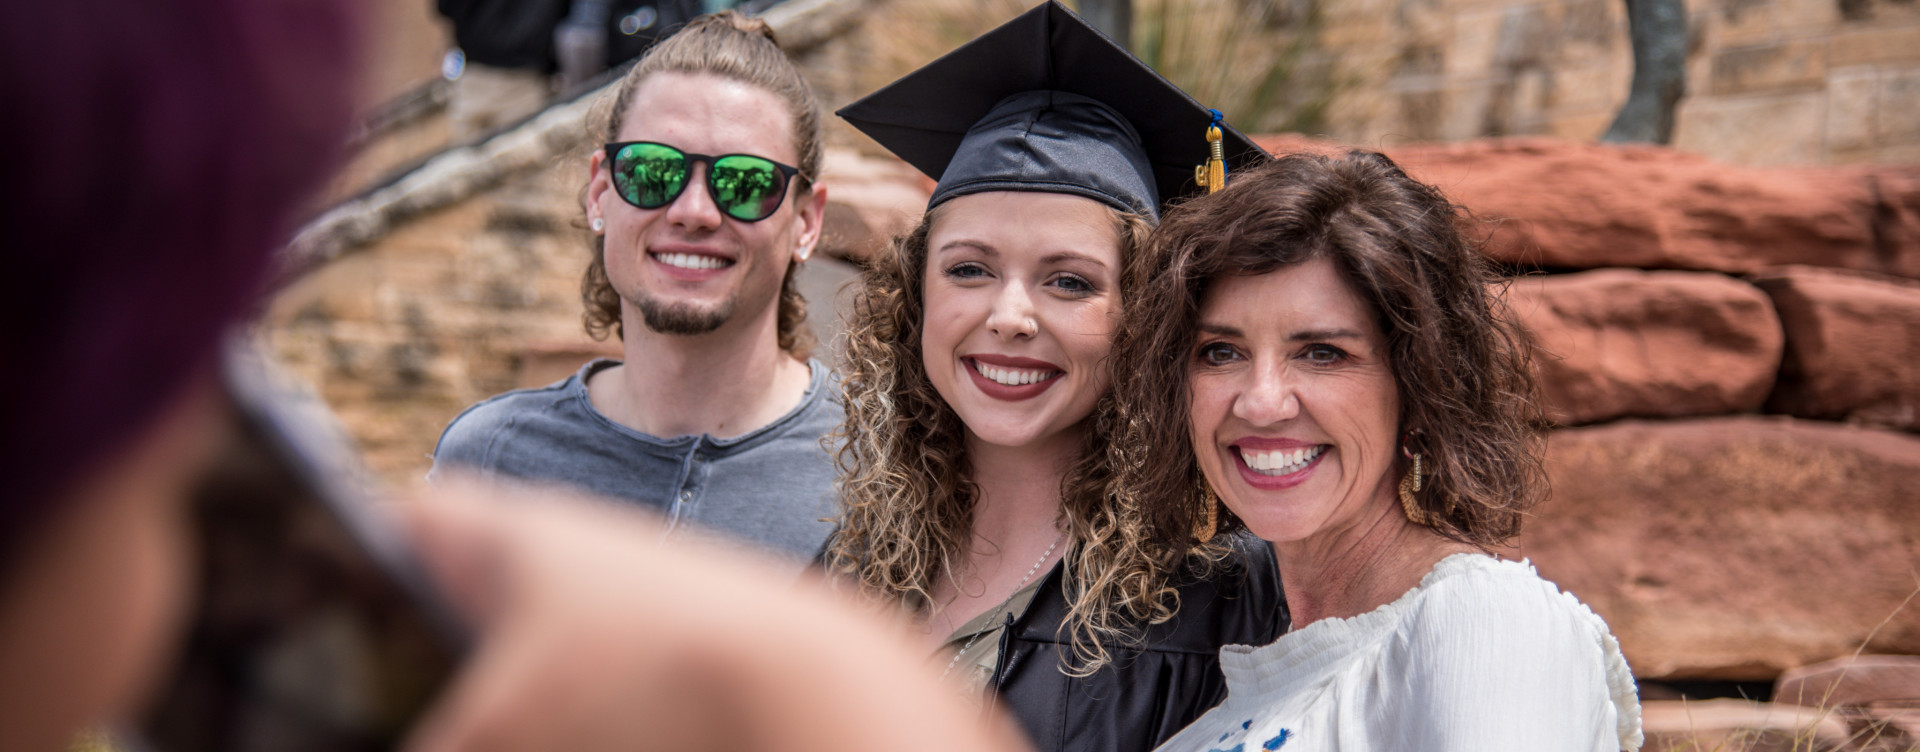 Family gathers after graduation ceremony.